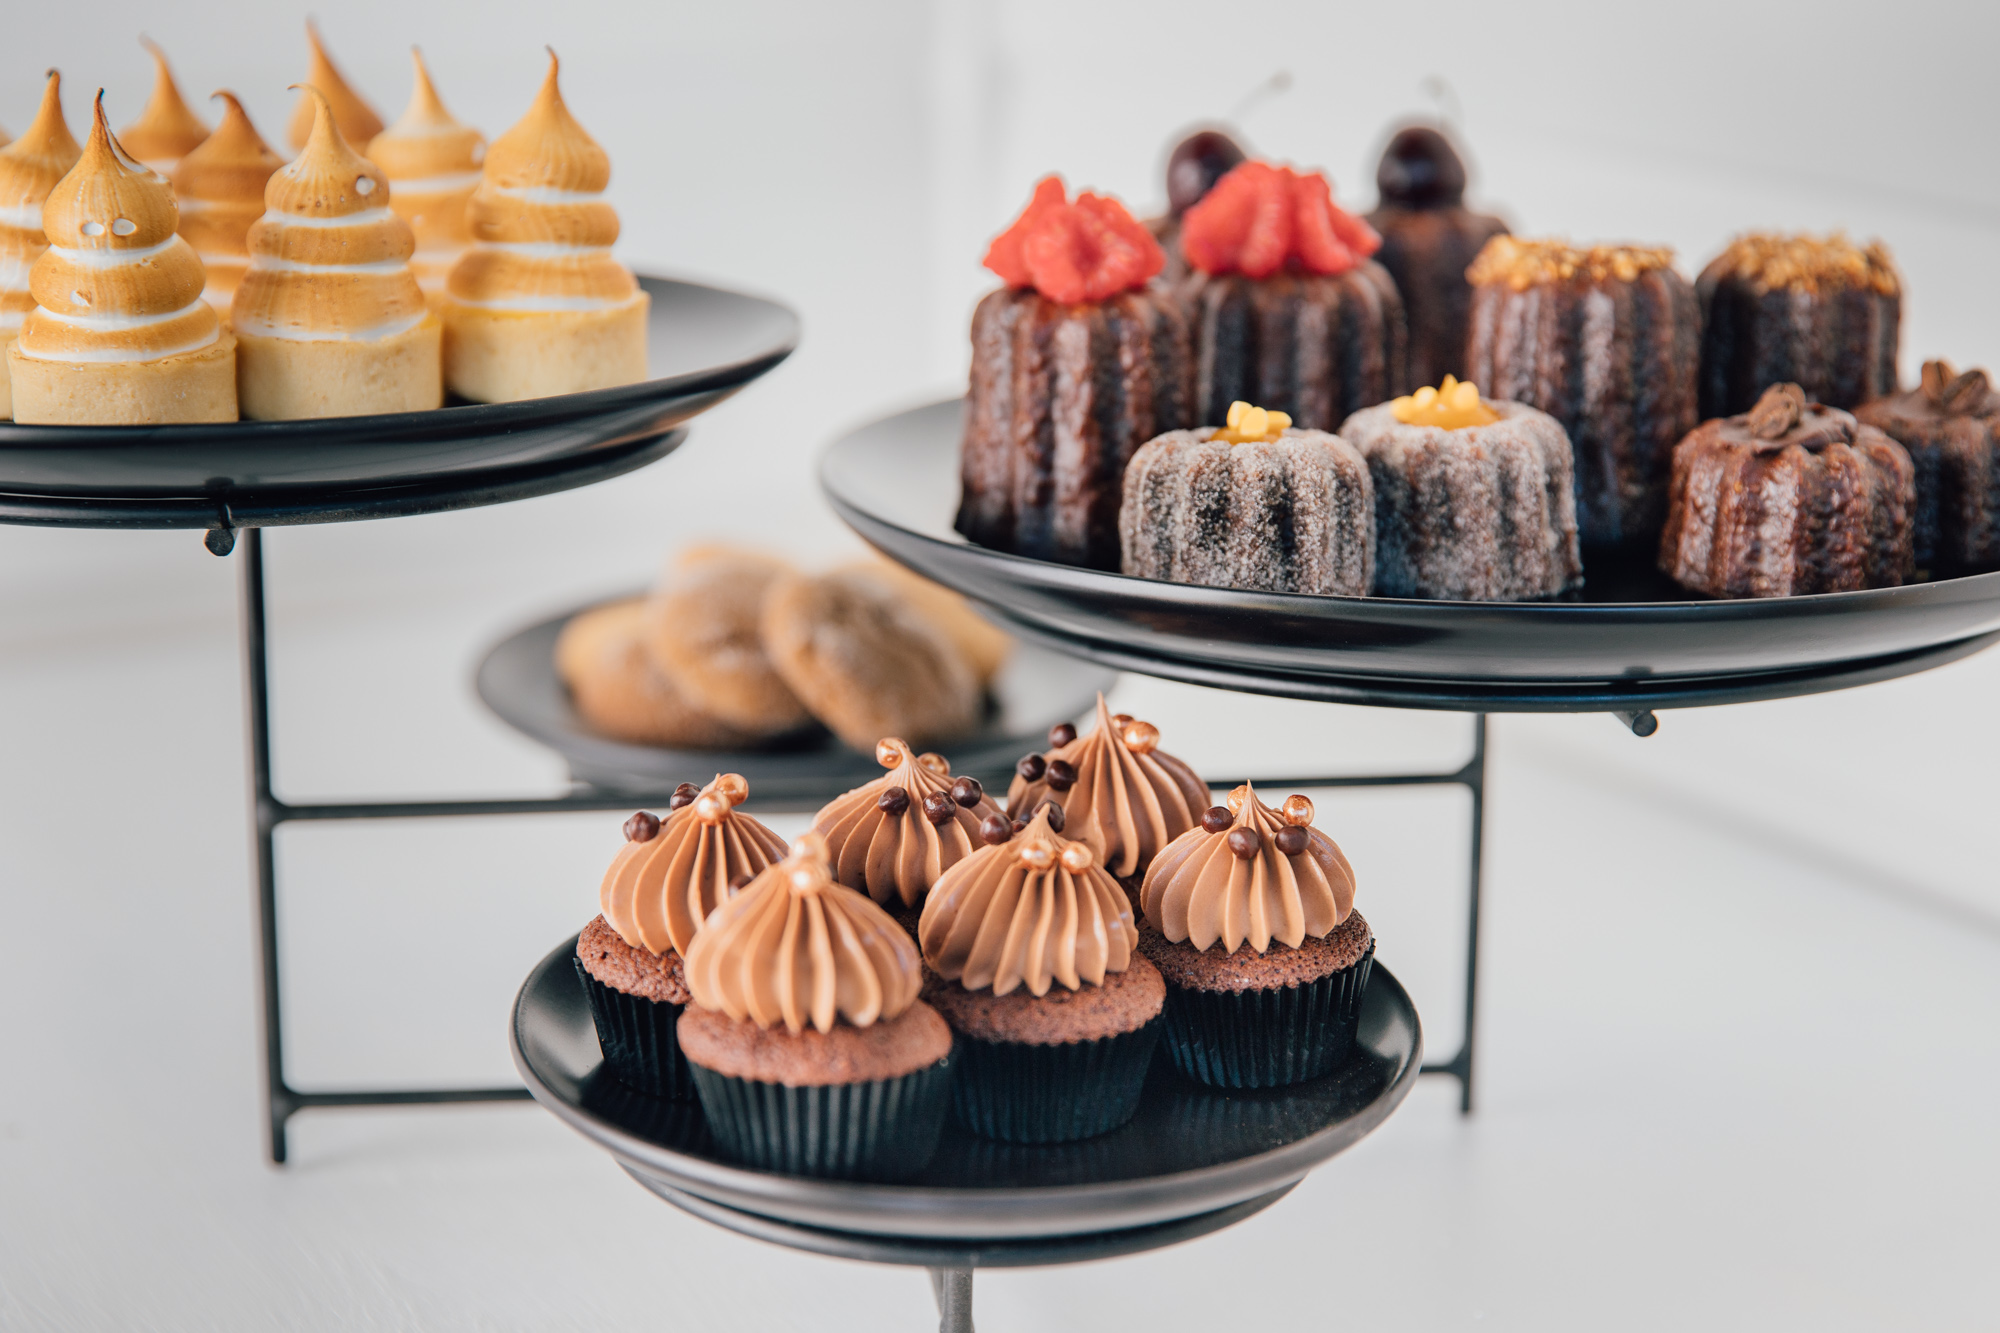 SWEET TREATS - Perfect catering accompaniment with our mobile coffee cart.Custom Cookies, Cupcakes, Macaroons, Brownies, Canales, Tartelettes, Sugar Cookies, Croissants and more.From $3.00 +GST per item (min order of 50 items)